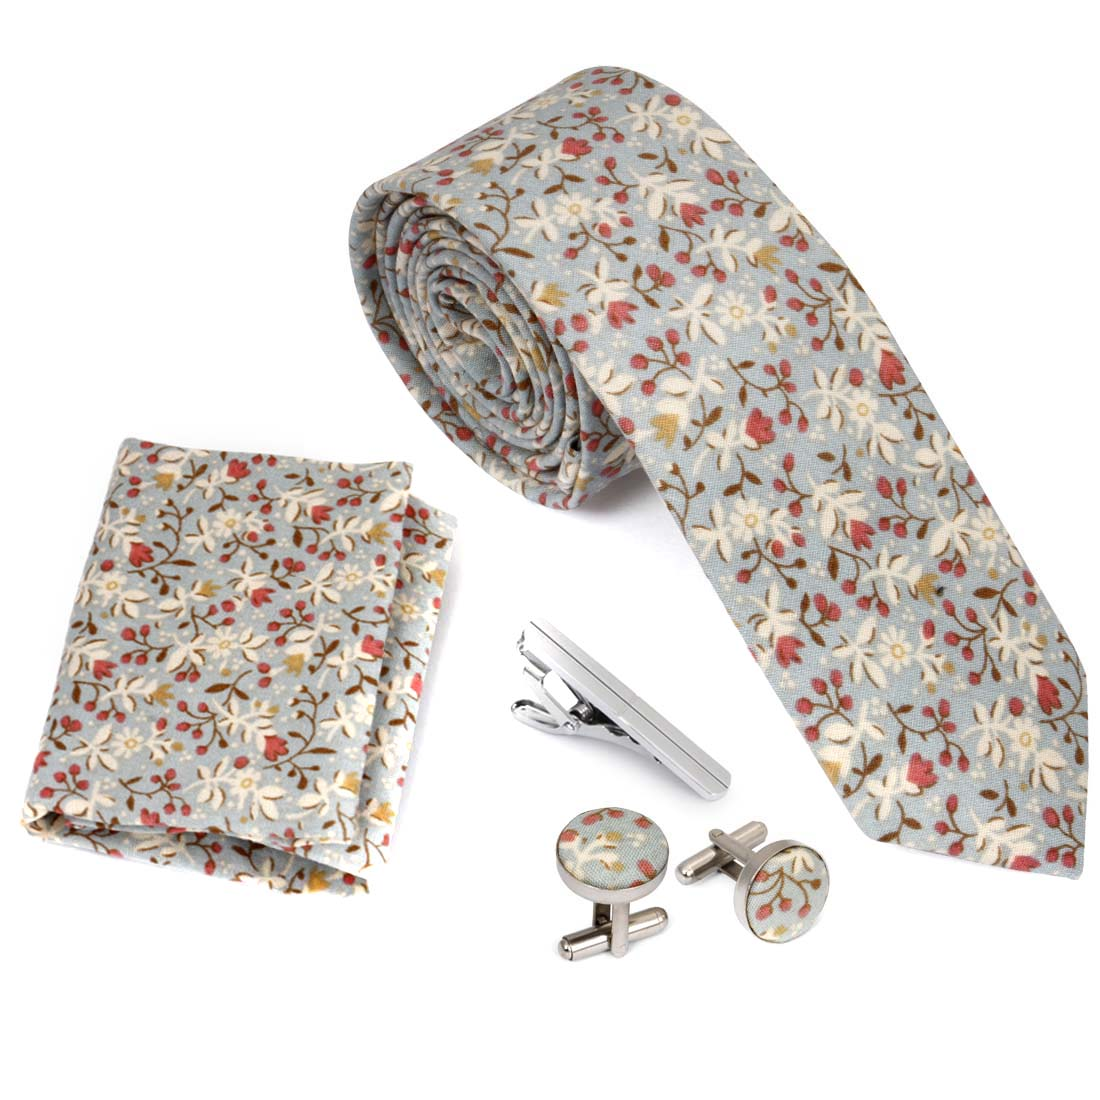 4pc Floral Design Matching Pattern Mens Fashion Accessories Set